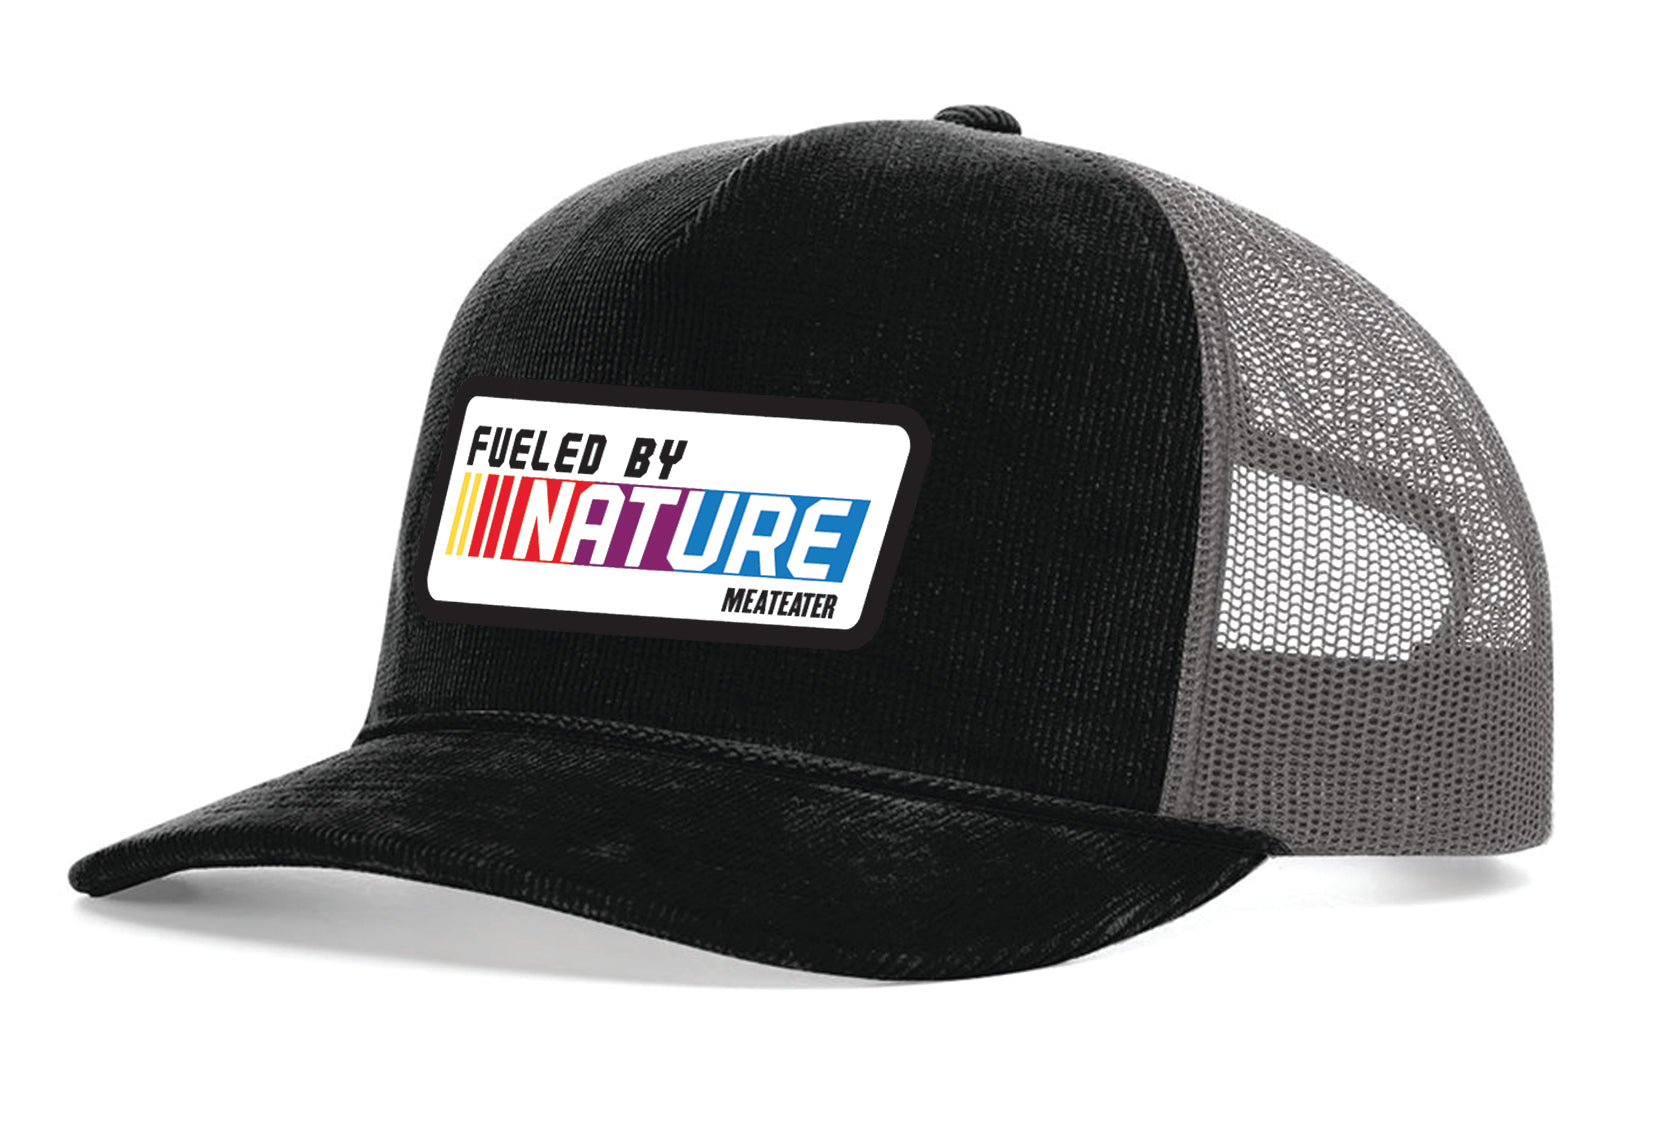 Fueled by Nature Hat